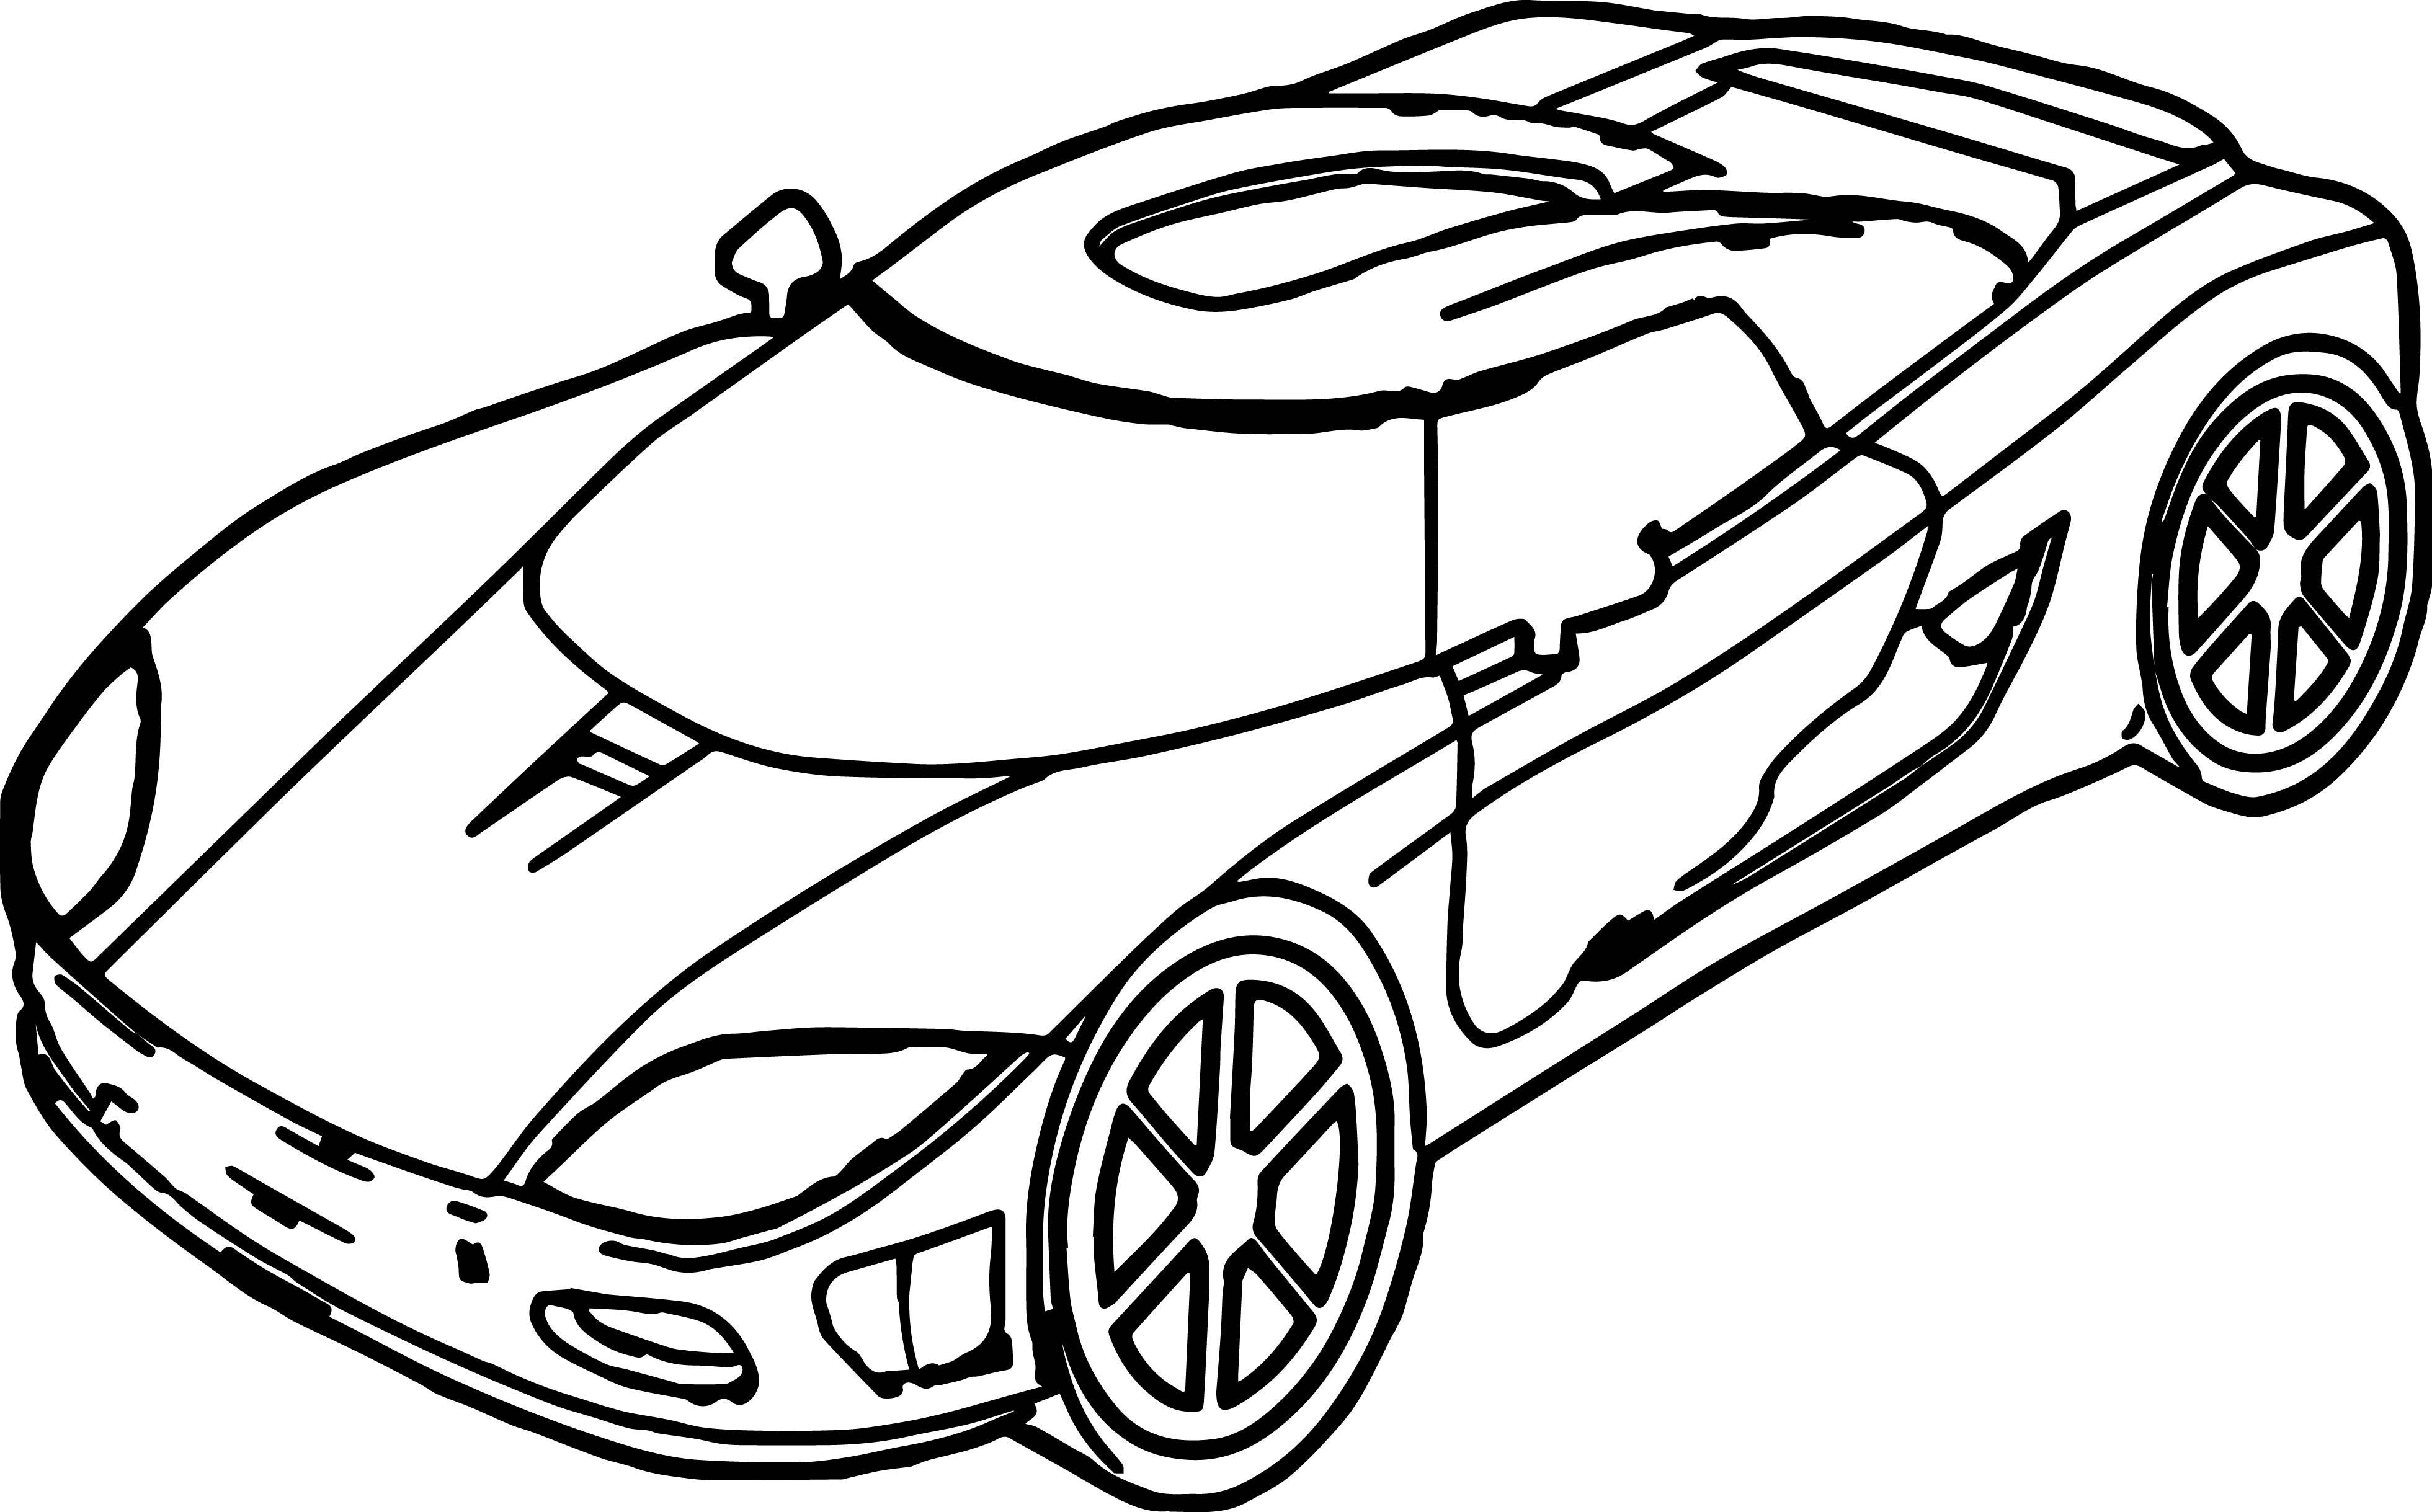 coloring pages cars top 25 free printable muscle car coloring pages online pages cars coloring